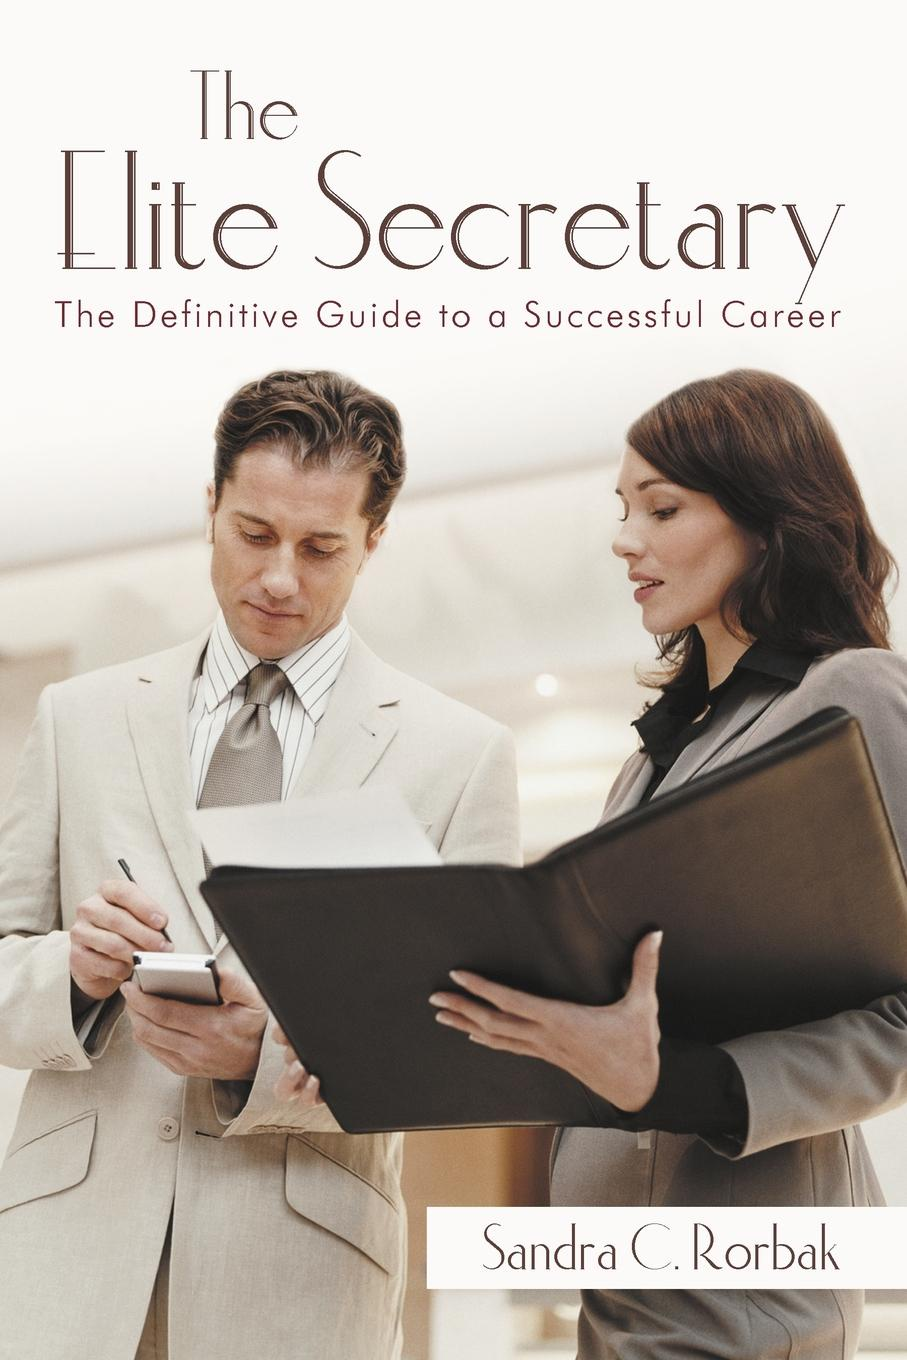 Sandra C. Rorbak. The Elite Secretary. The Definitive Guide to a Successful Career